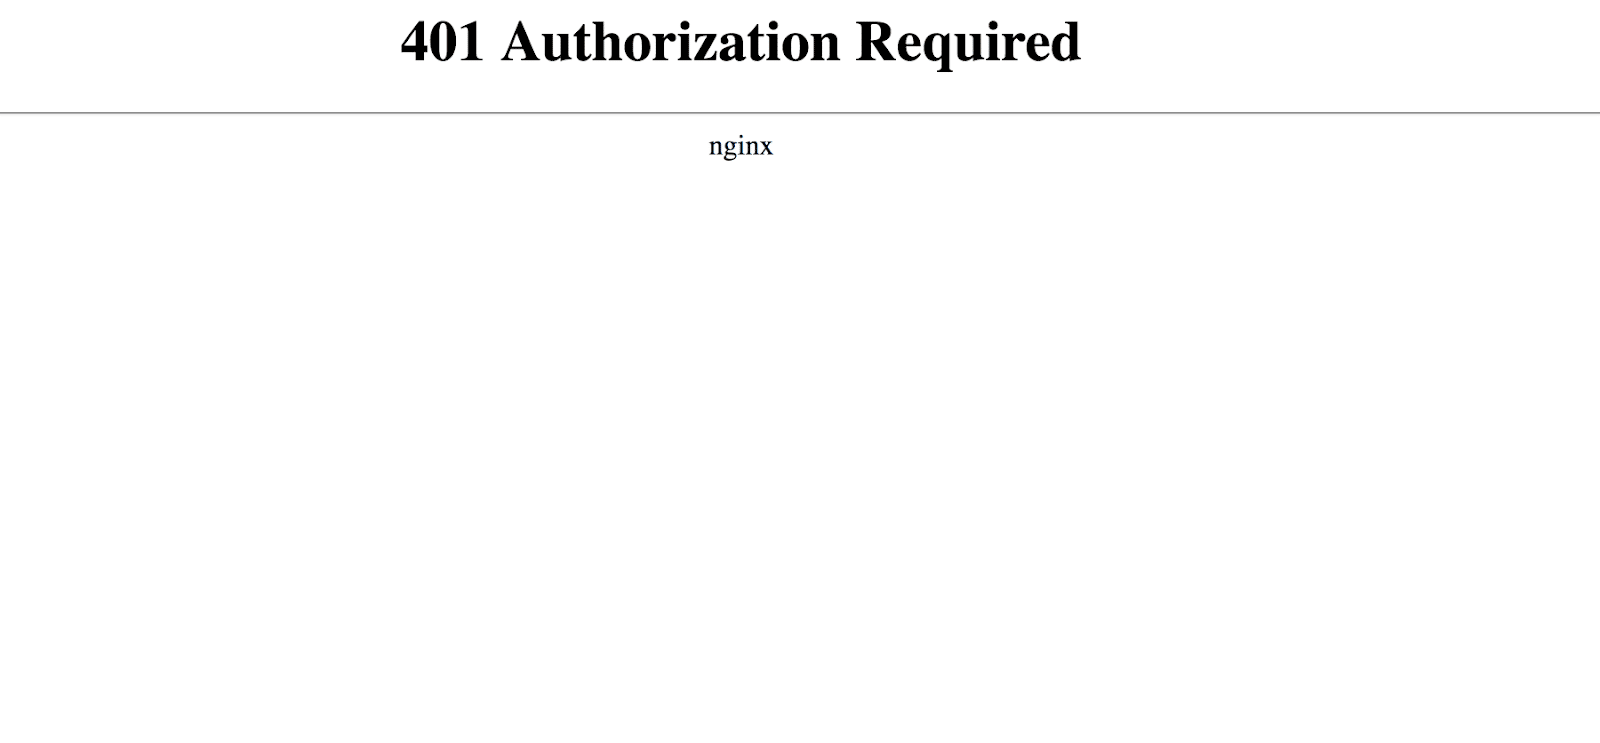 401 error Authorization Required